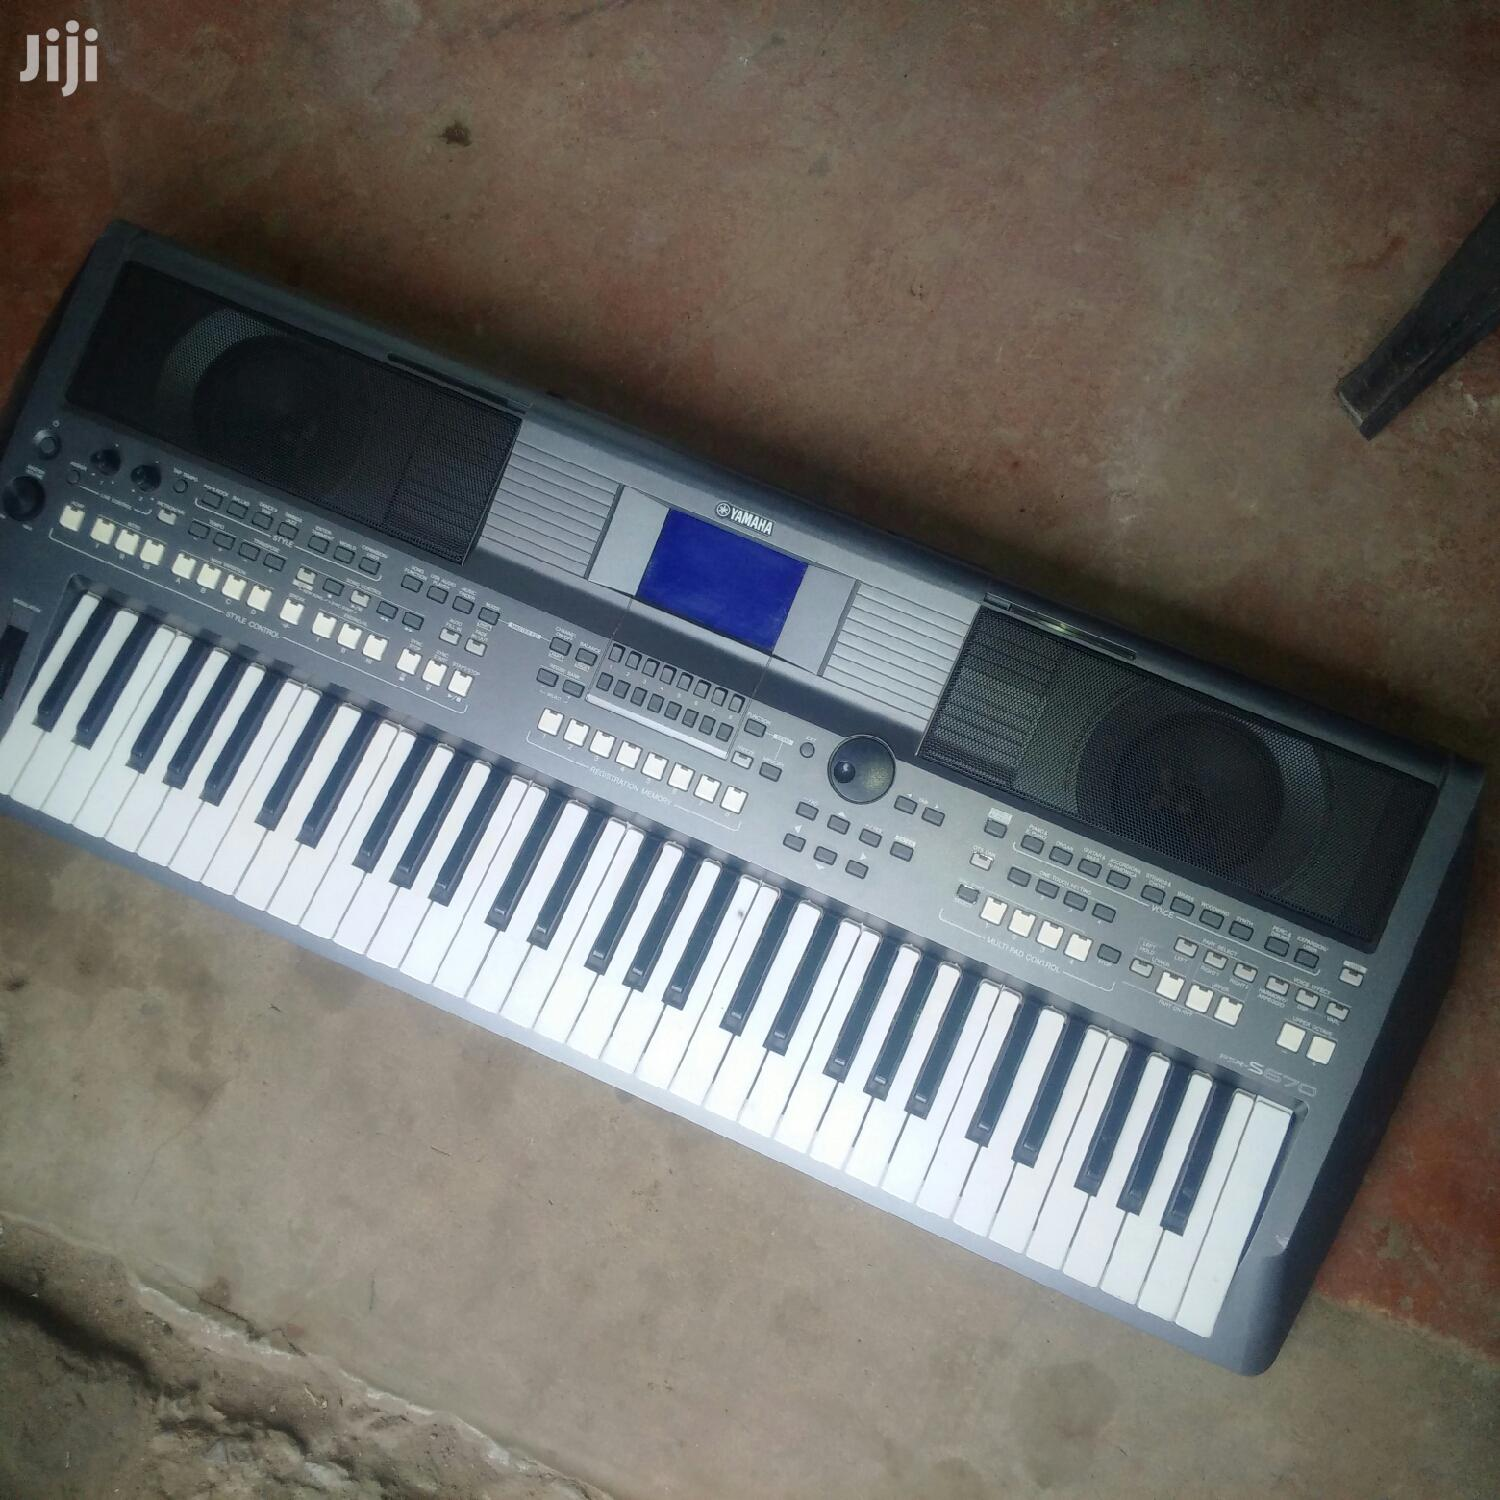 Yamaha PSR-S670 61-Key Arranger Workstation | Musical Instruments & Gear for sale in Nairobi Central, Nairobi, Kenya